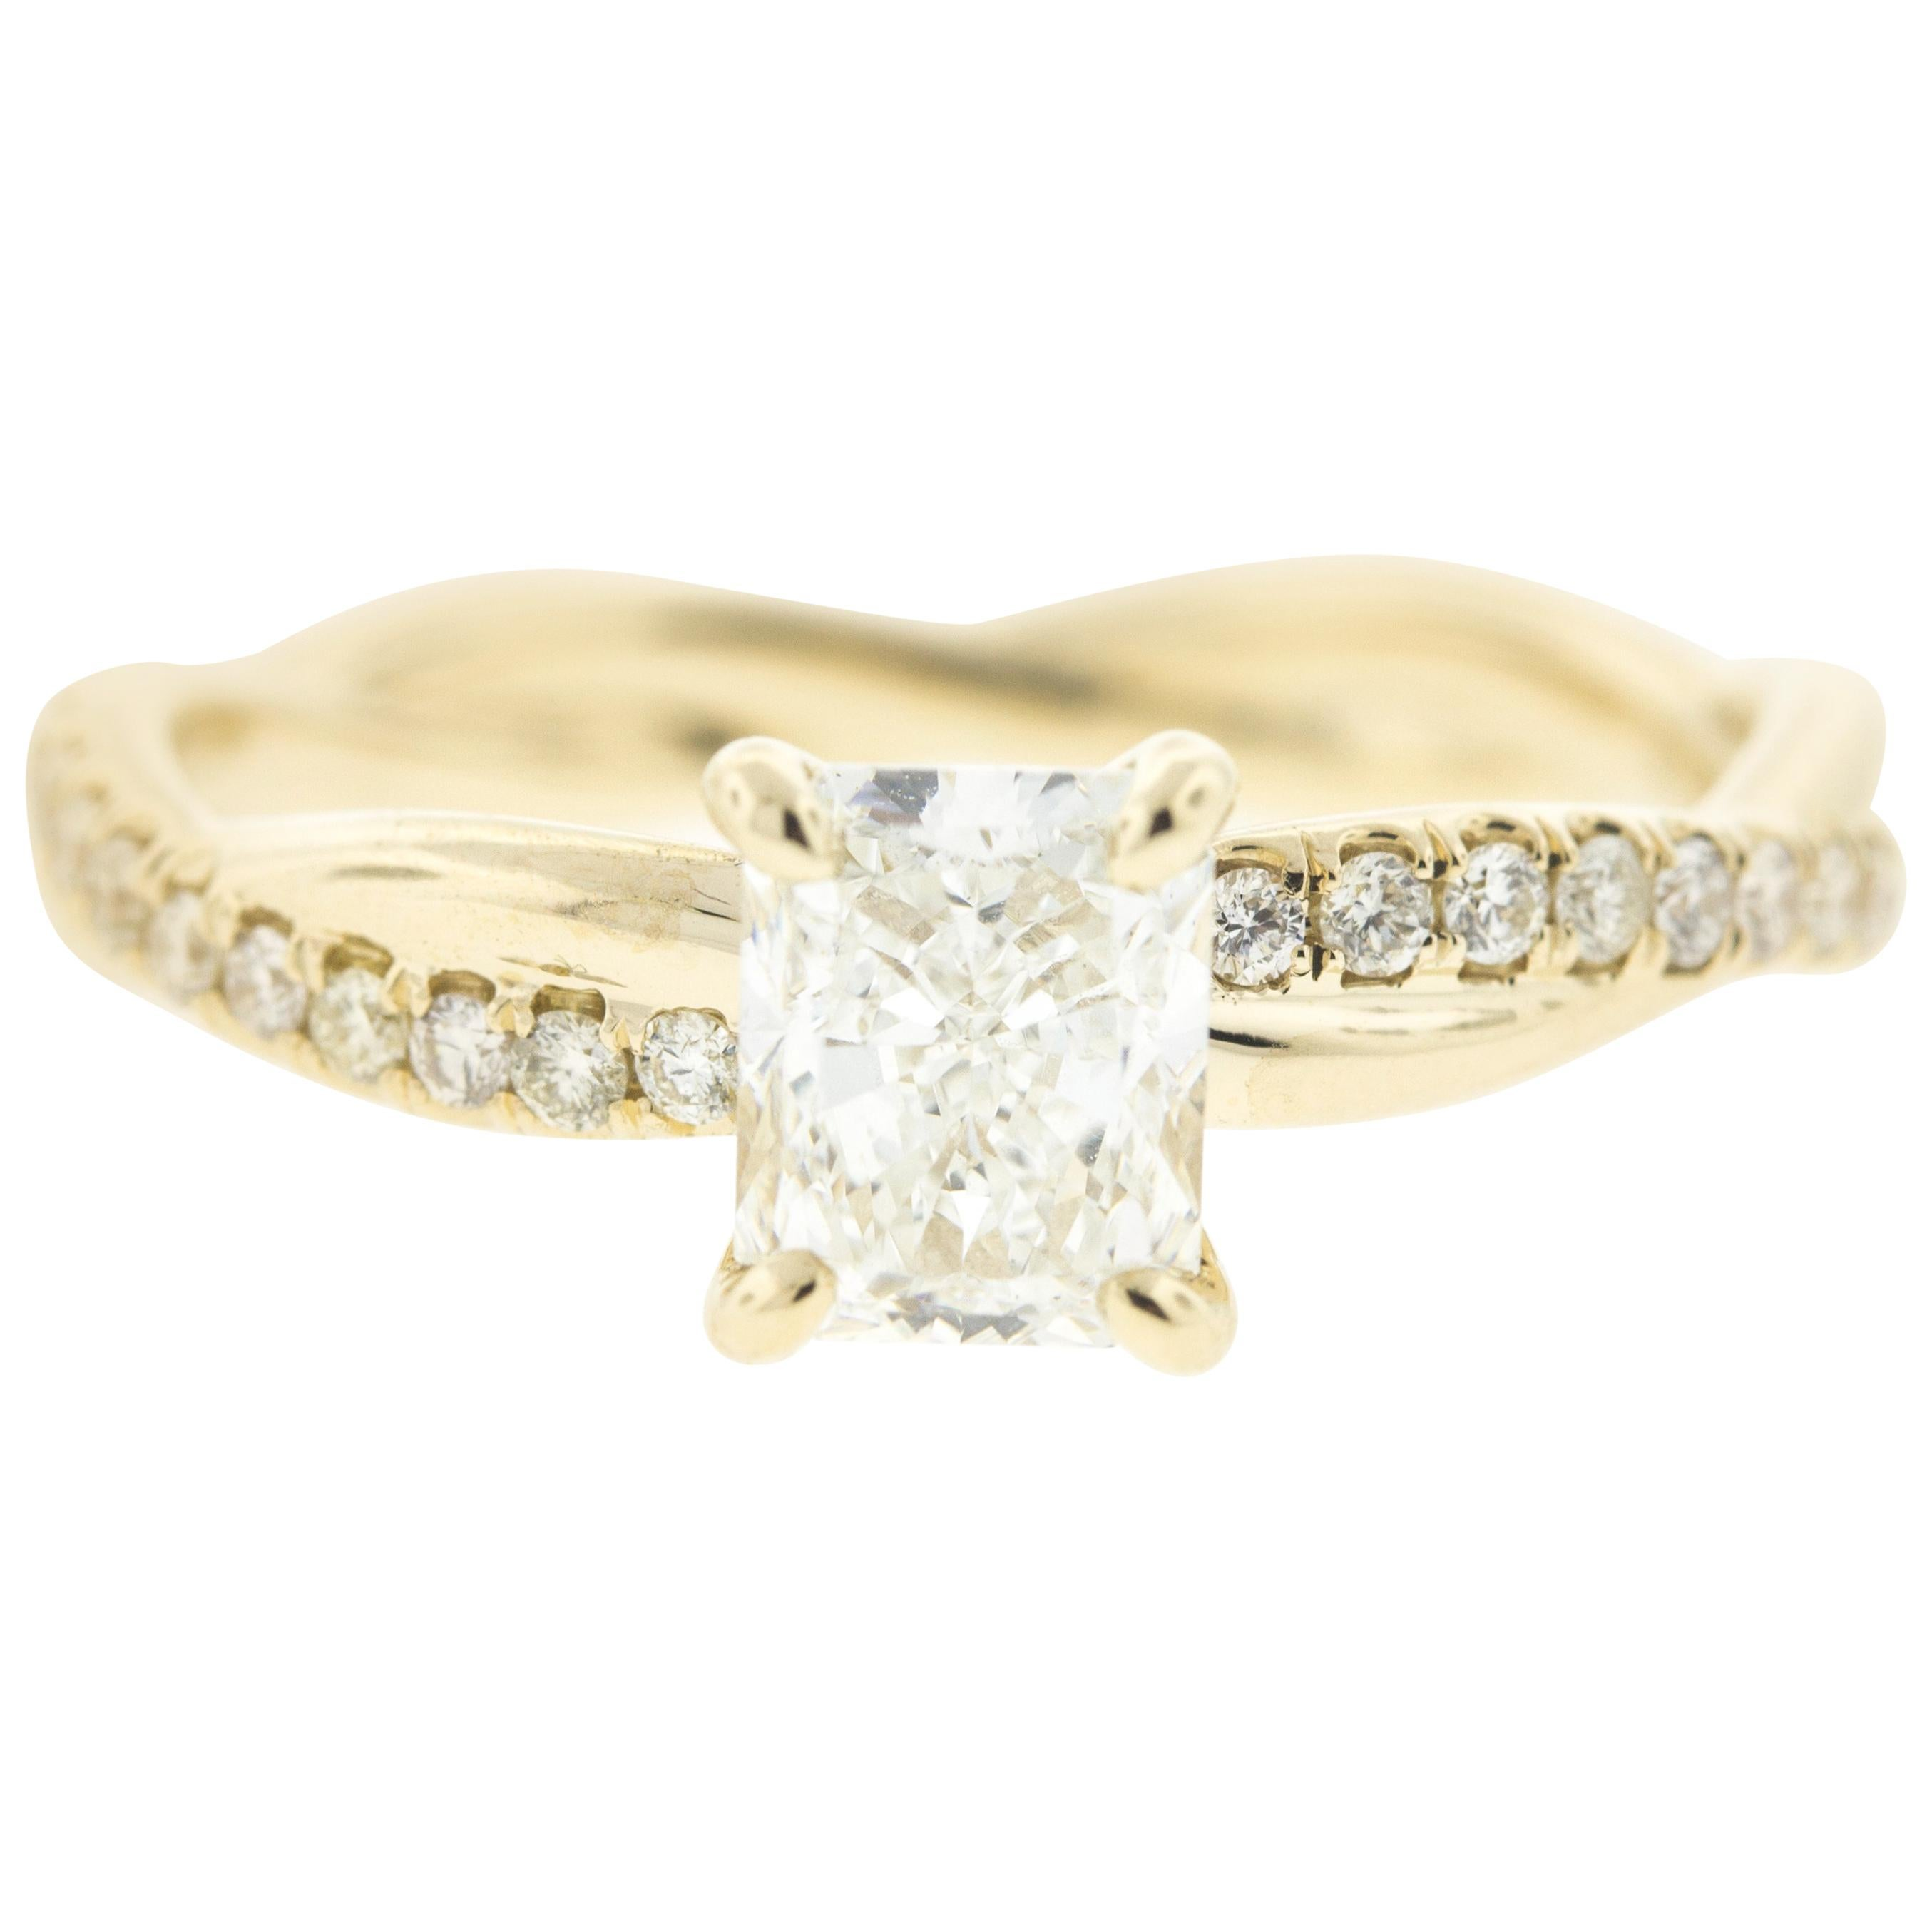 Twisted Yellow Gold Diamond Engagement Ring with Radiant Center Diamond  (1CT)